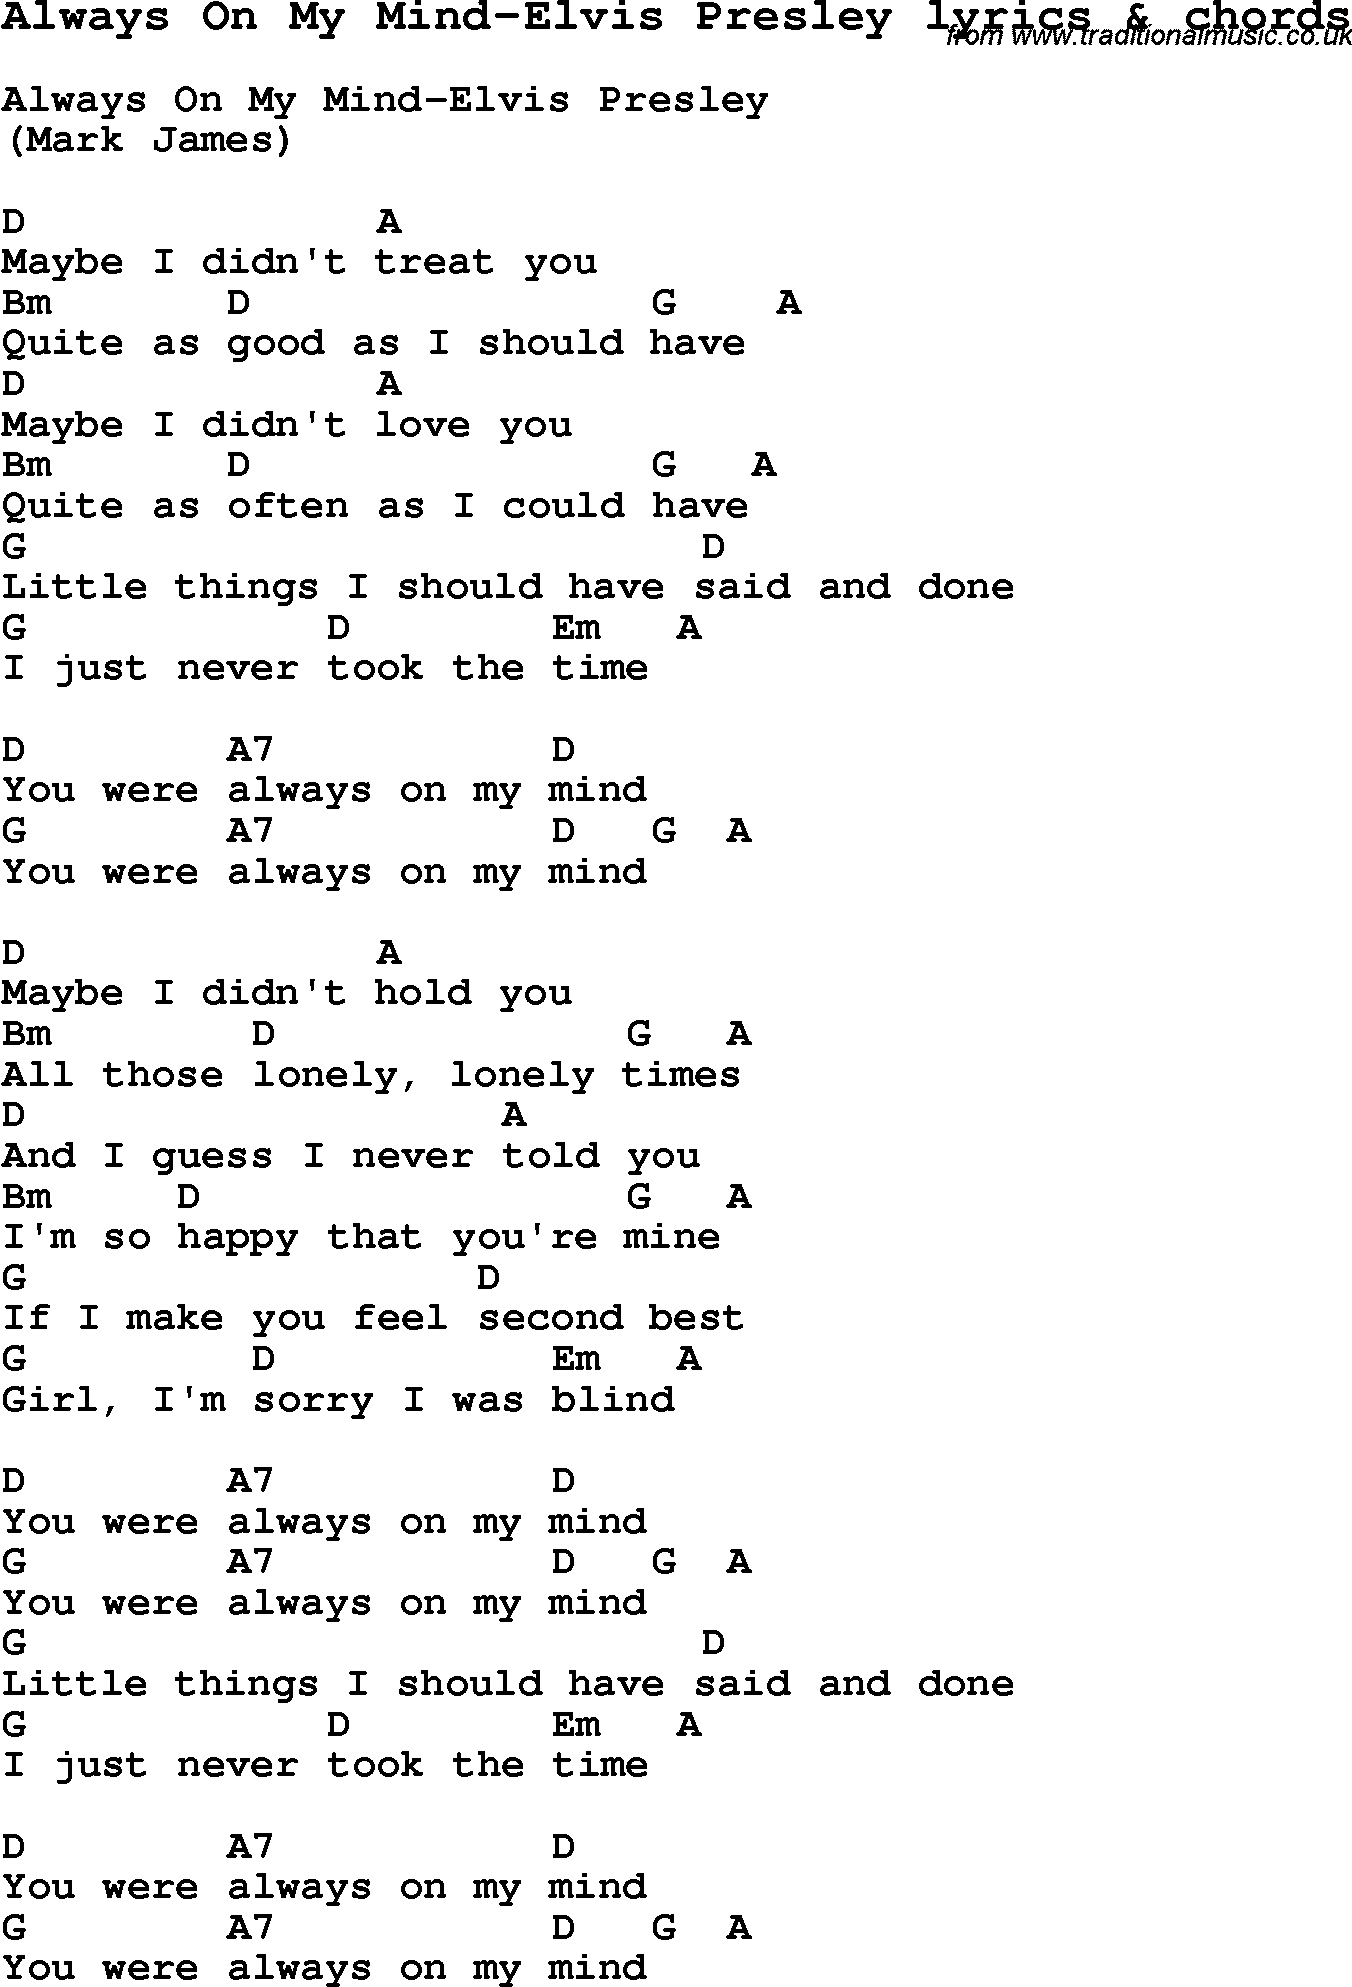 Love song lyrics for always on my mind elvis presley with chords love song lyrics for always on my mind elvis presley with chords for ukulele hexwebz Image collections